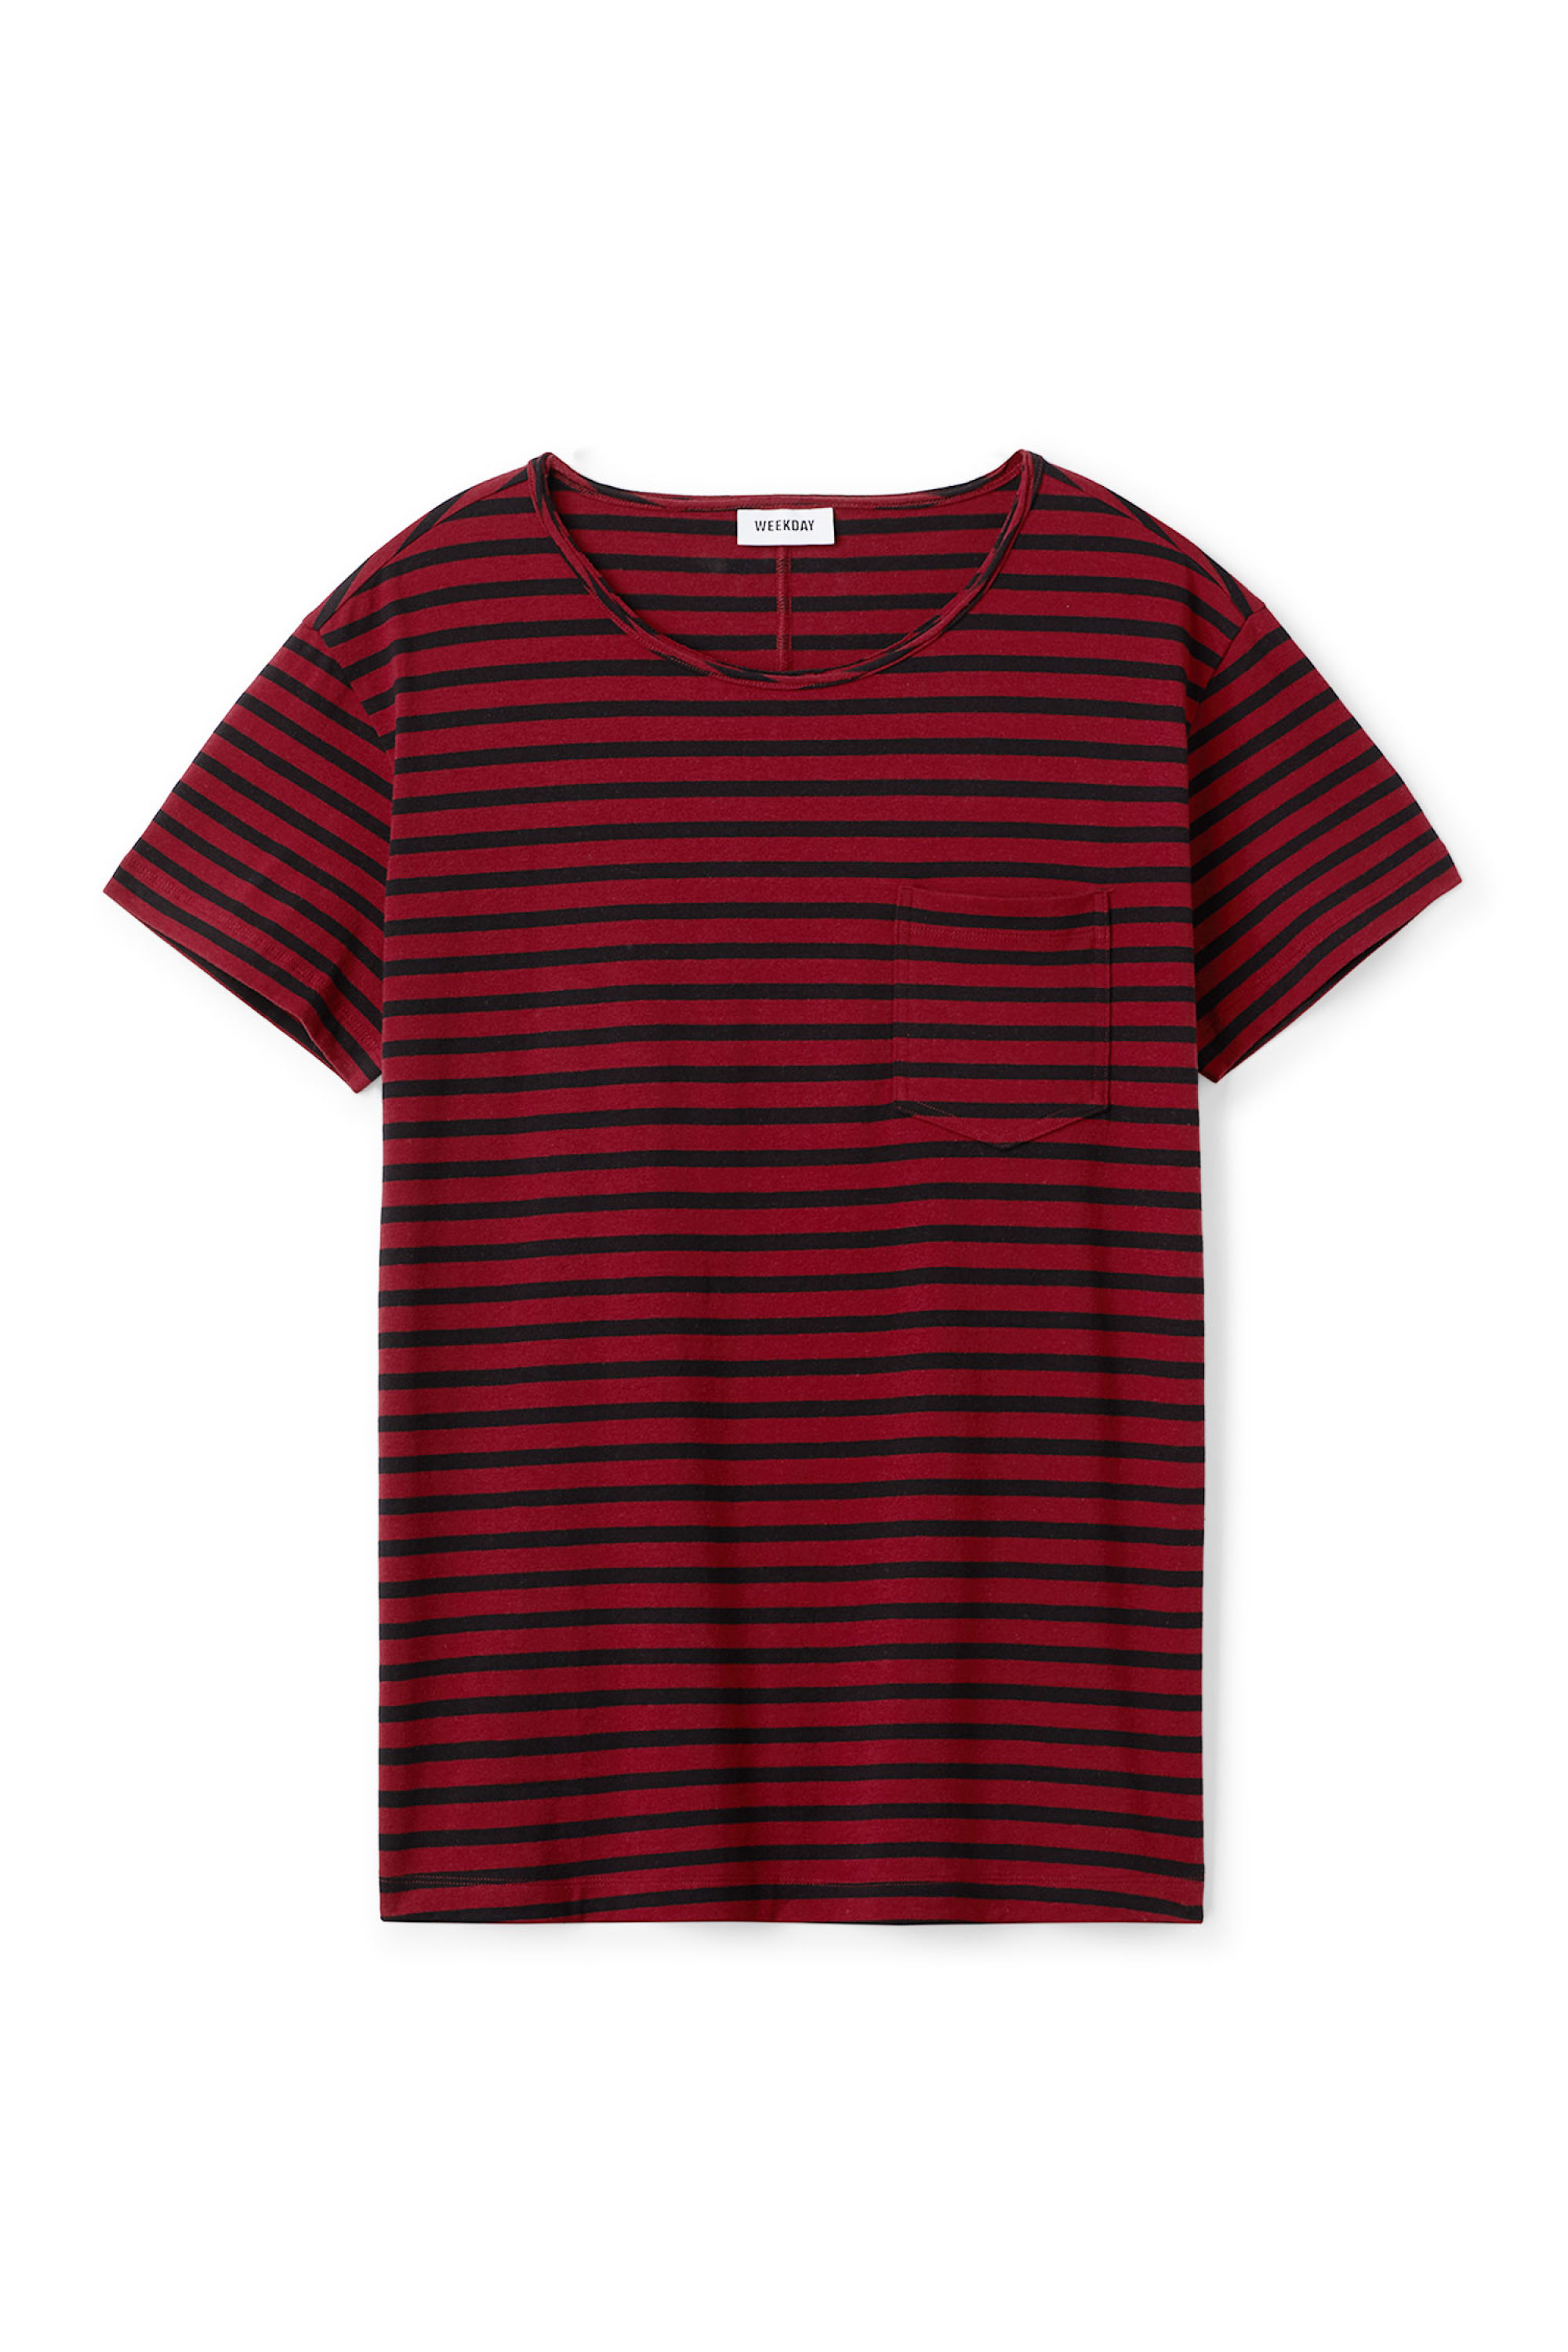 Weekday Rumour Striped T-shirt